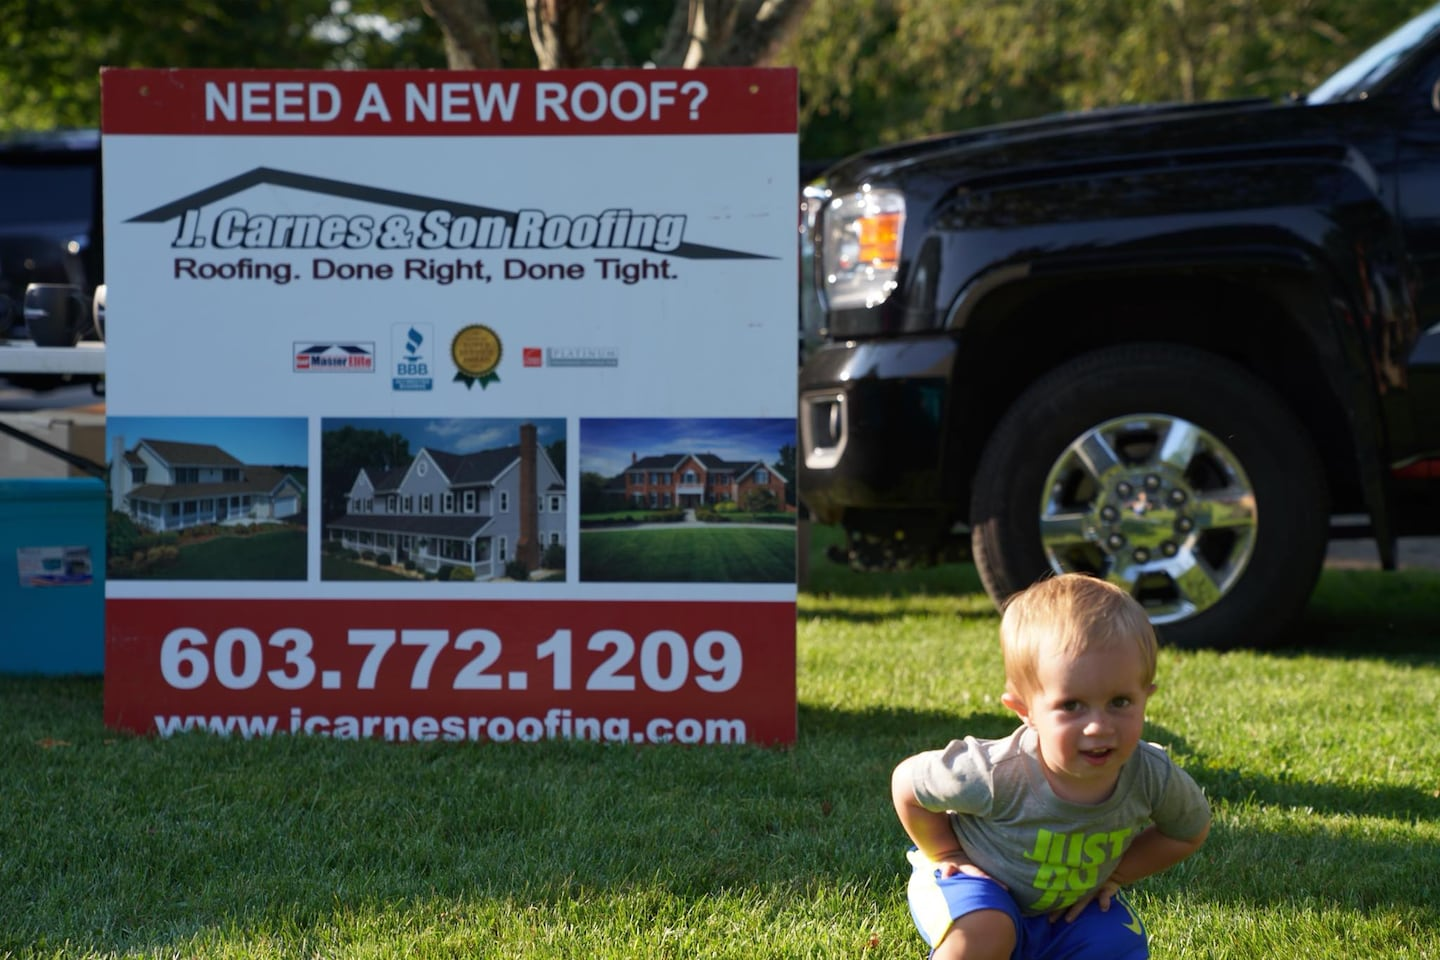 J Carnes & Son Roofing